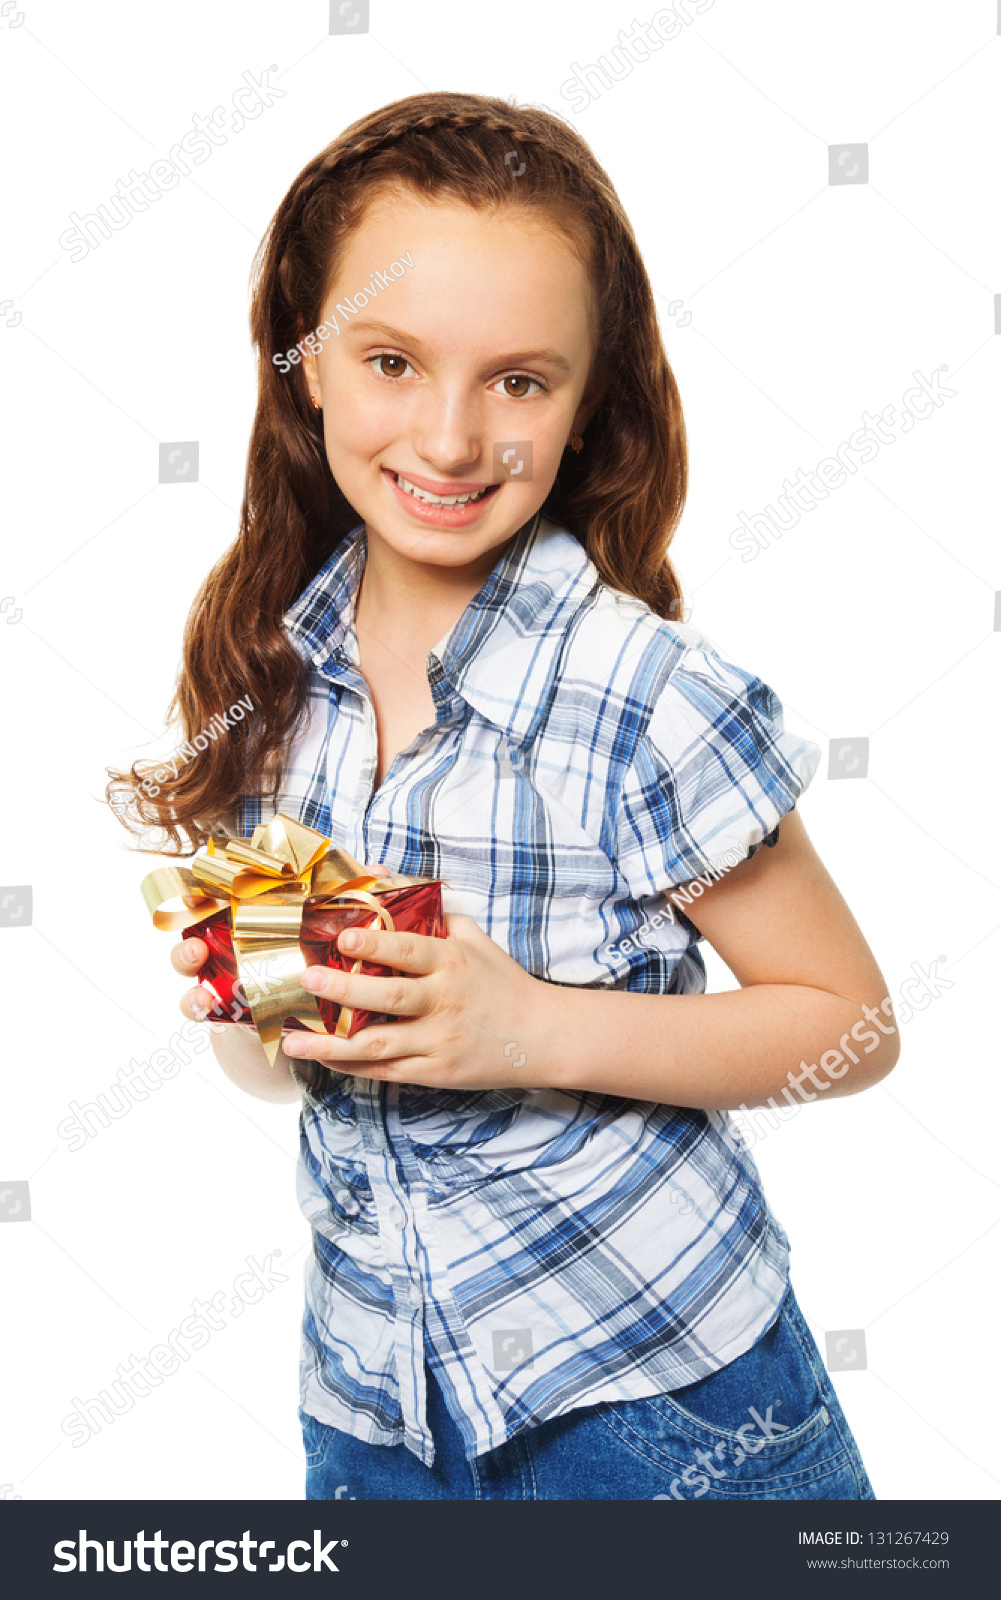 Happy Teen By Crumbling Wall Stock Image: Happy Teen Caucasian Girl Holding Small Red Present Box